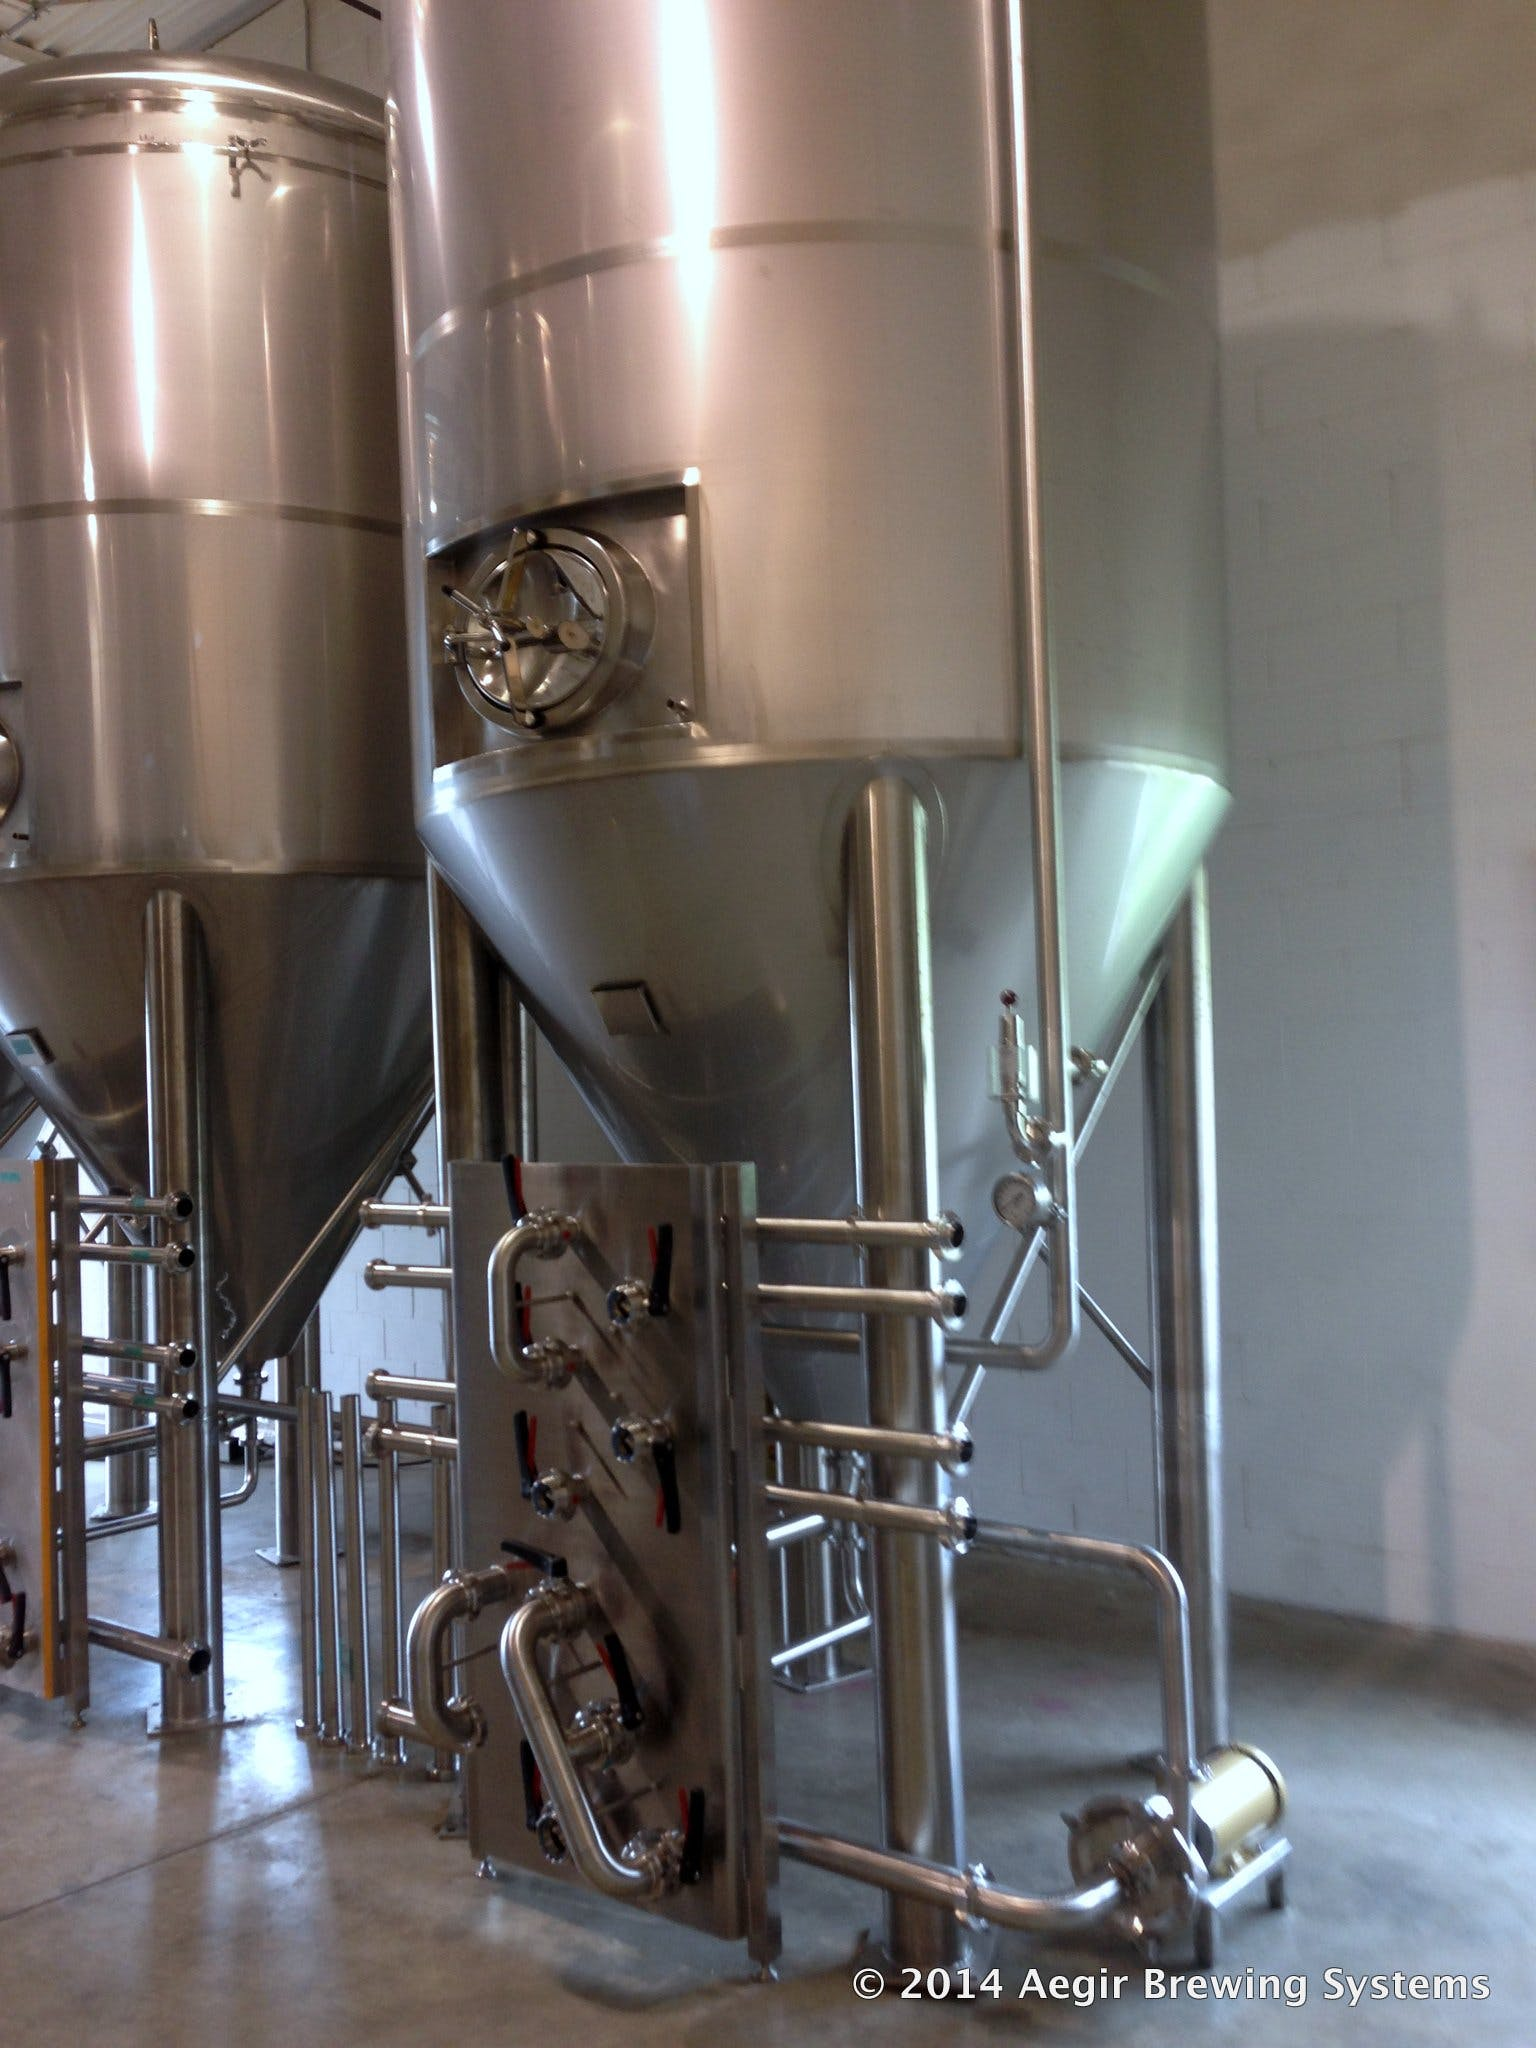 Mash Filter Brewhouse Systems - sold by Aegir Brewing Systems